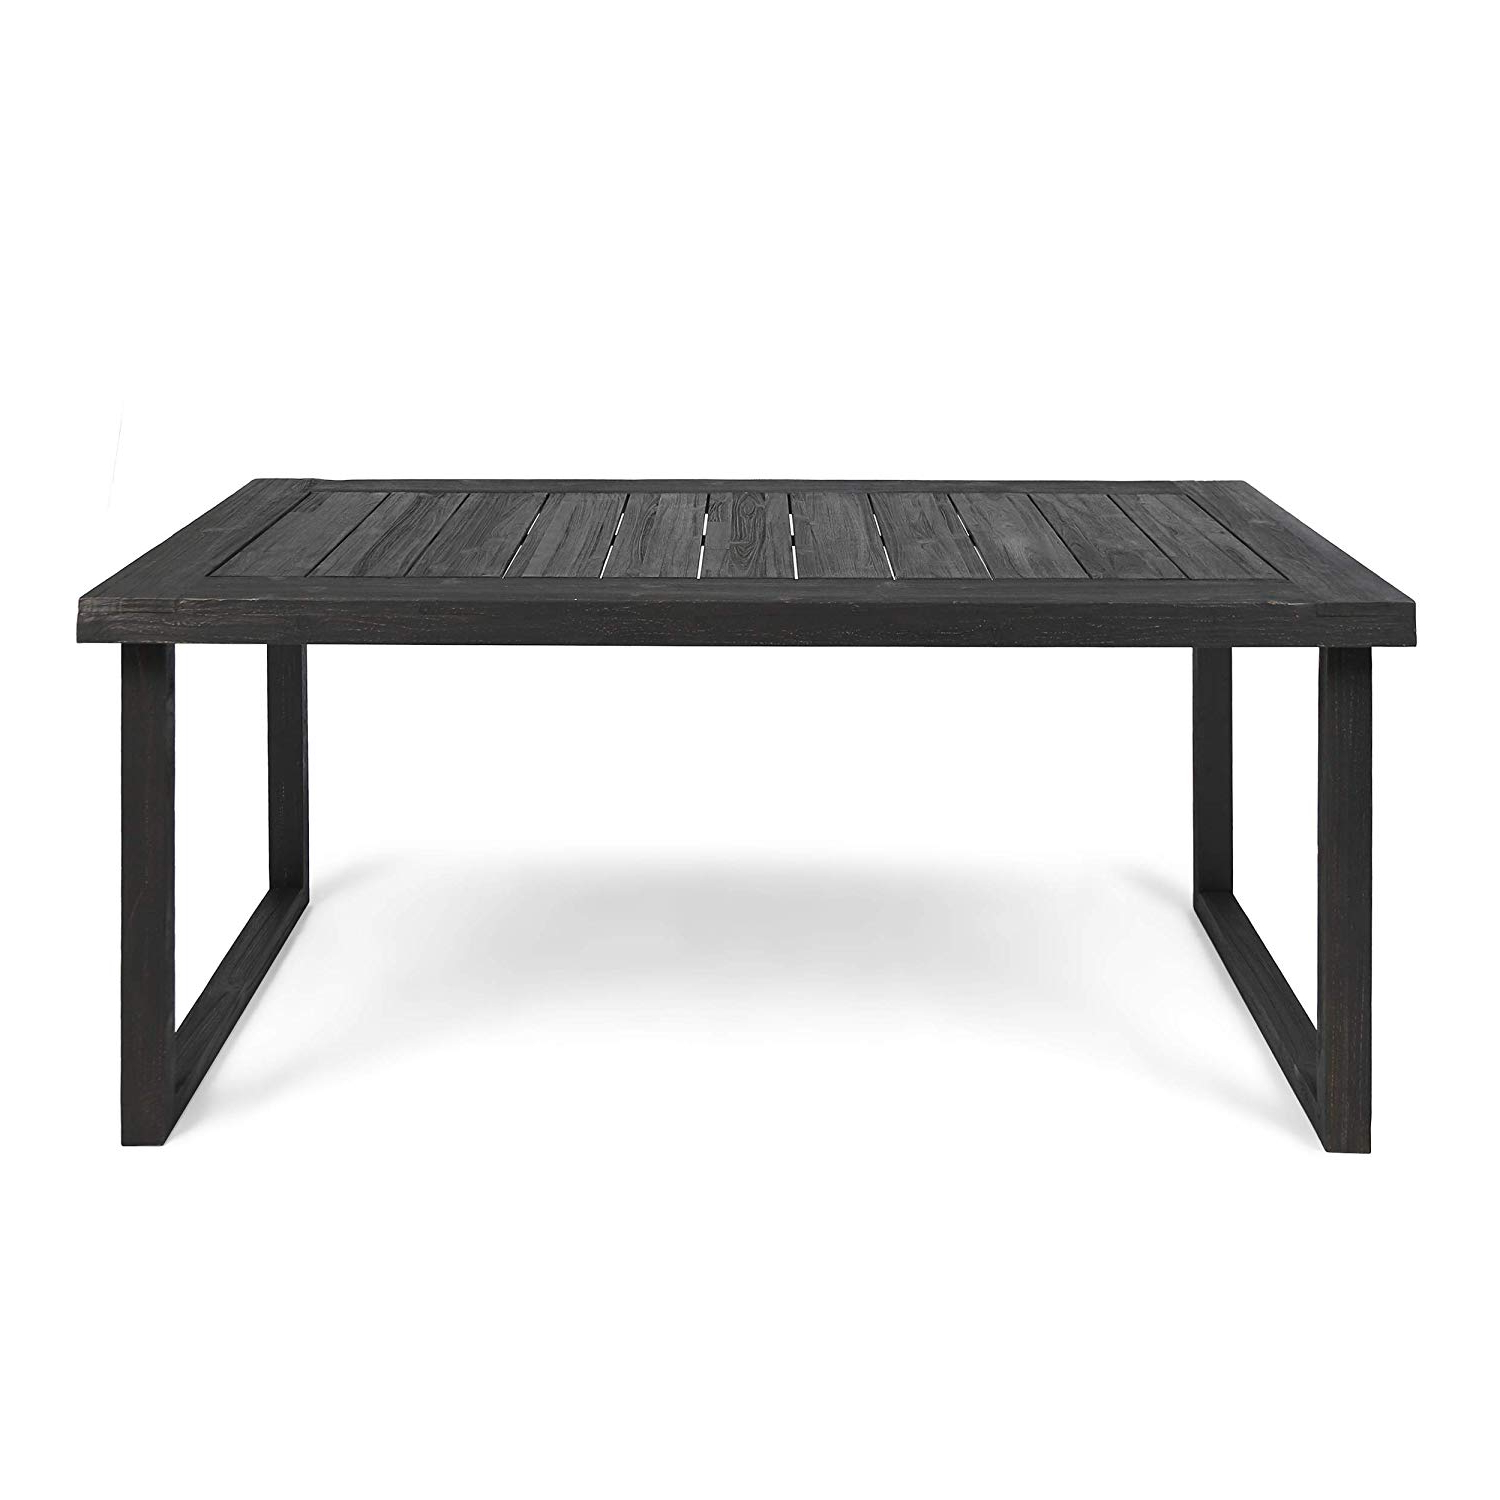 """Current Christopher Knight Home Ann Outdoor 69"""" Acacia Wood Dining Table, Sandblast Dark Gray Finish Pertaining To Acacia Dining Tables With Black Legs (View 16 of 25)"""